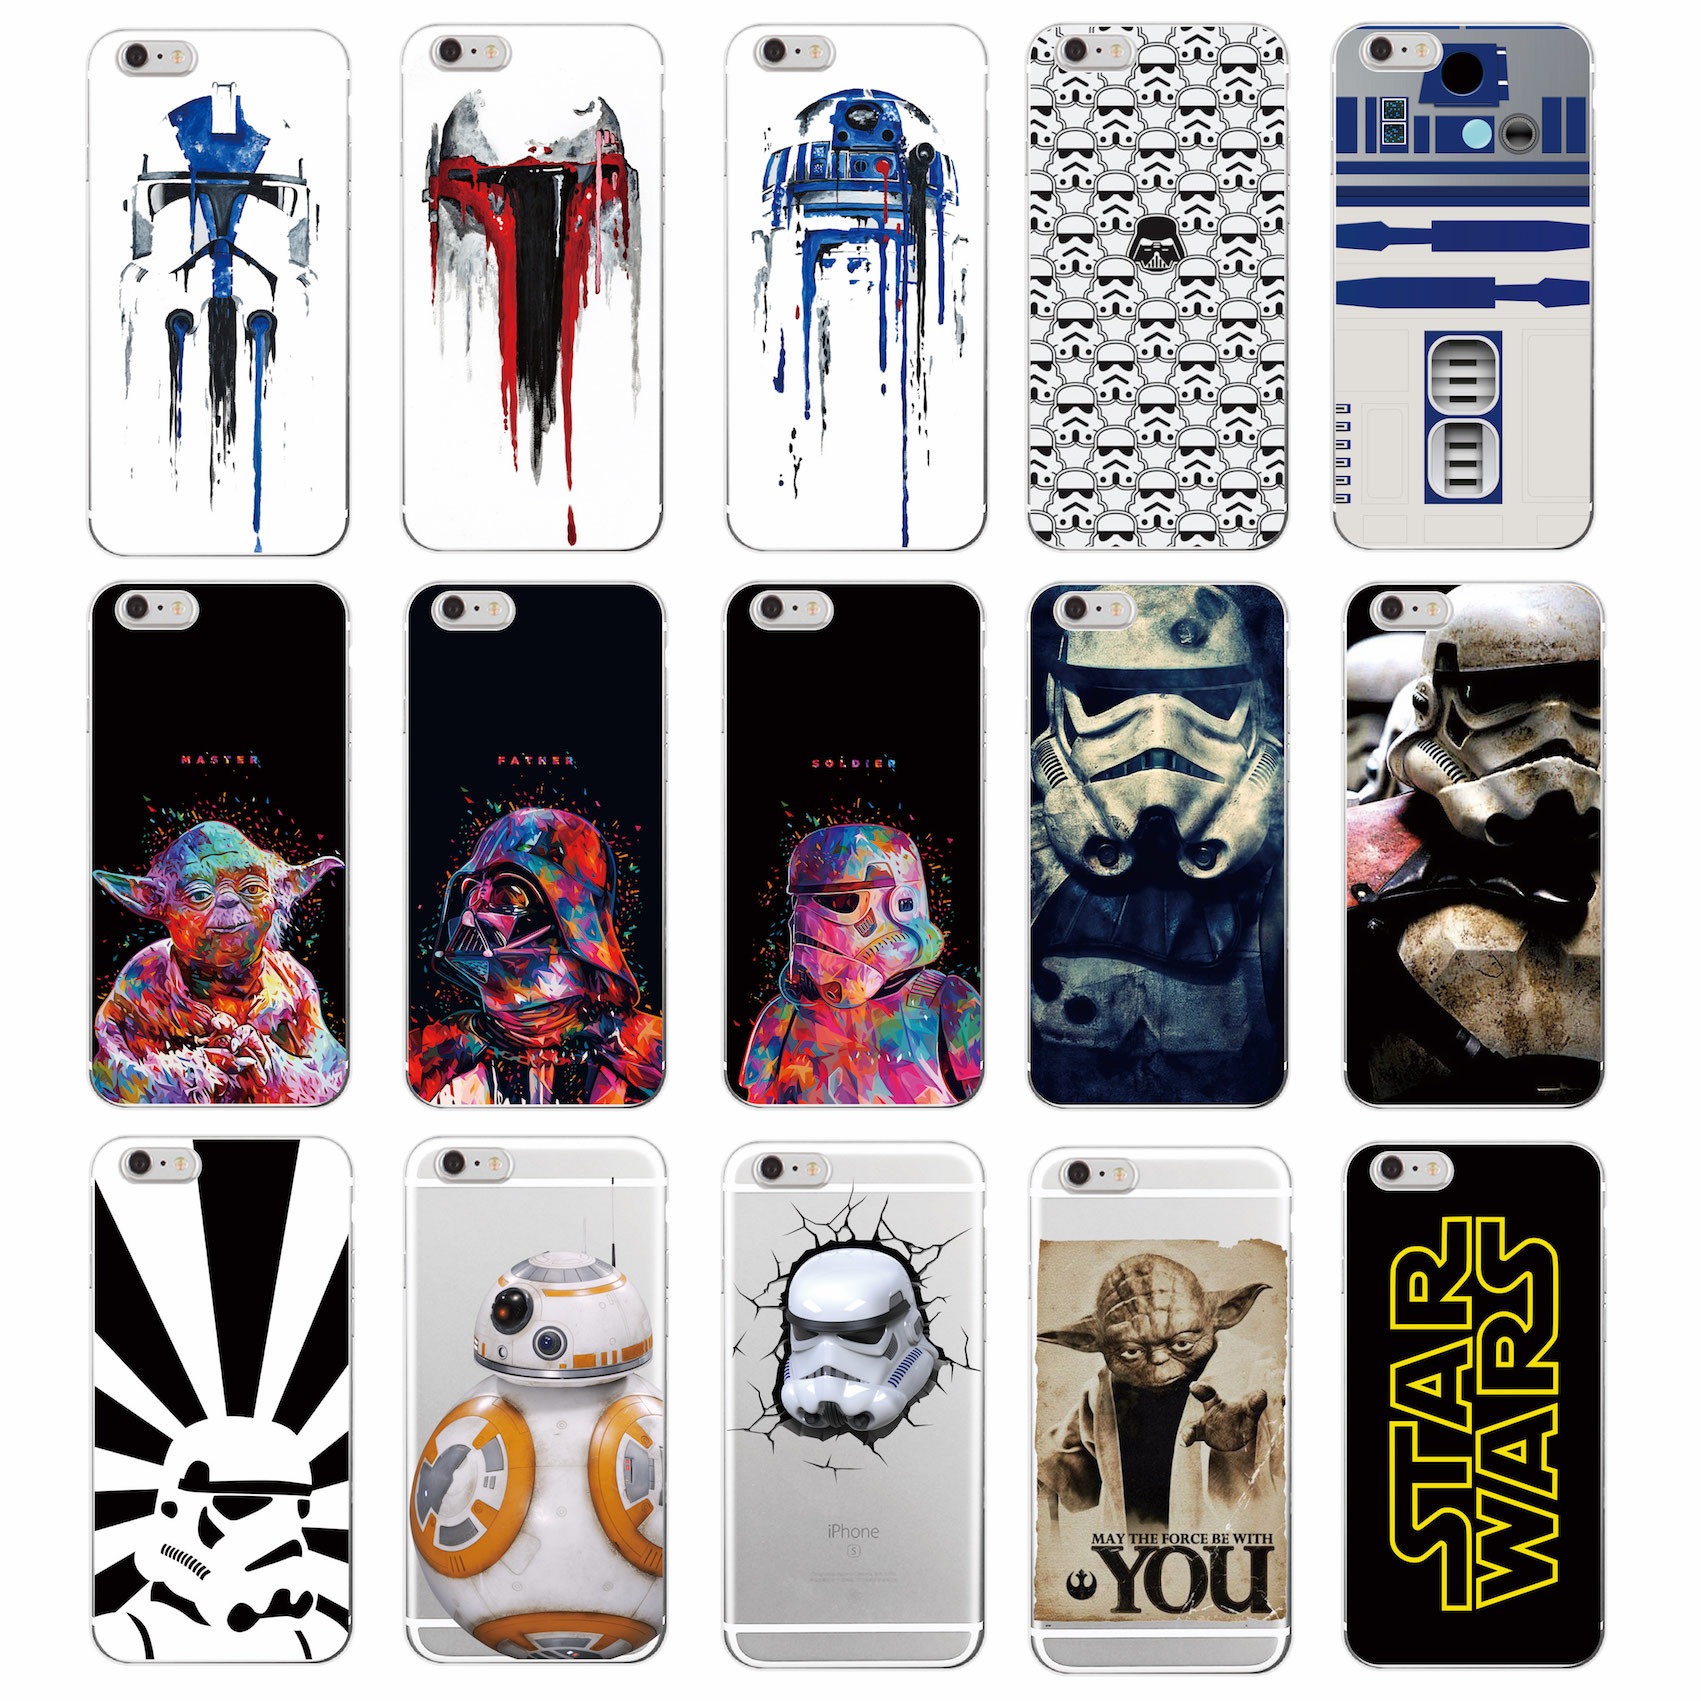 Star Wars Character Movie Storm Trooper Darth Vader Yoda R2-D2 BB-8 Soft Phone Case For iPhone 7Plus 7 6Plus 6 S 5 S 4S SE 5C